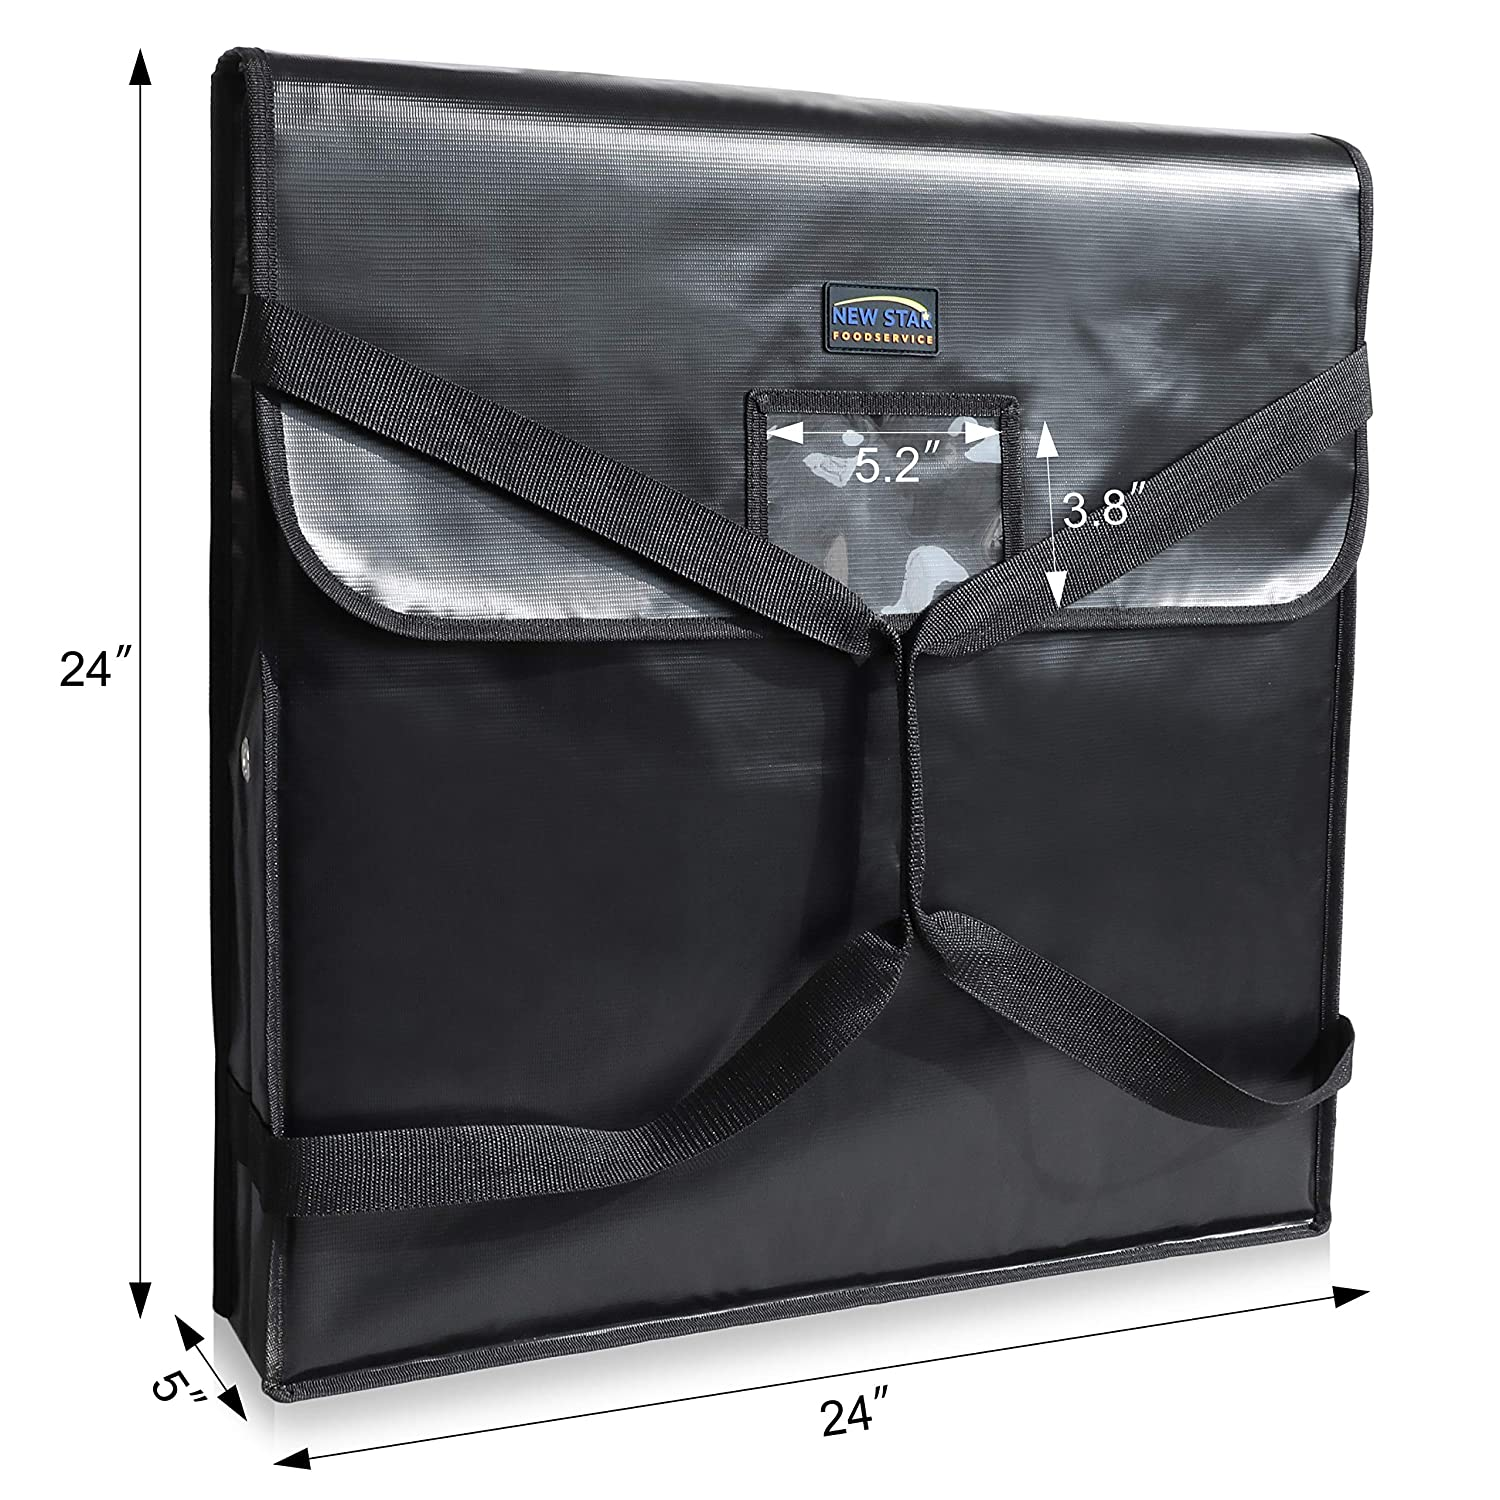 24 by 24 by 5 Black New Star Foodservice 51131 Insulated Pizza Delivery Bag